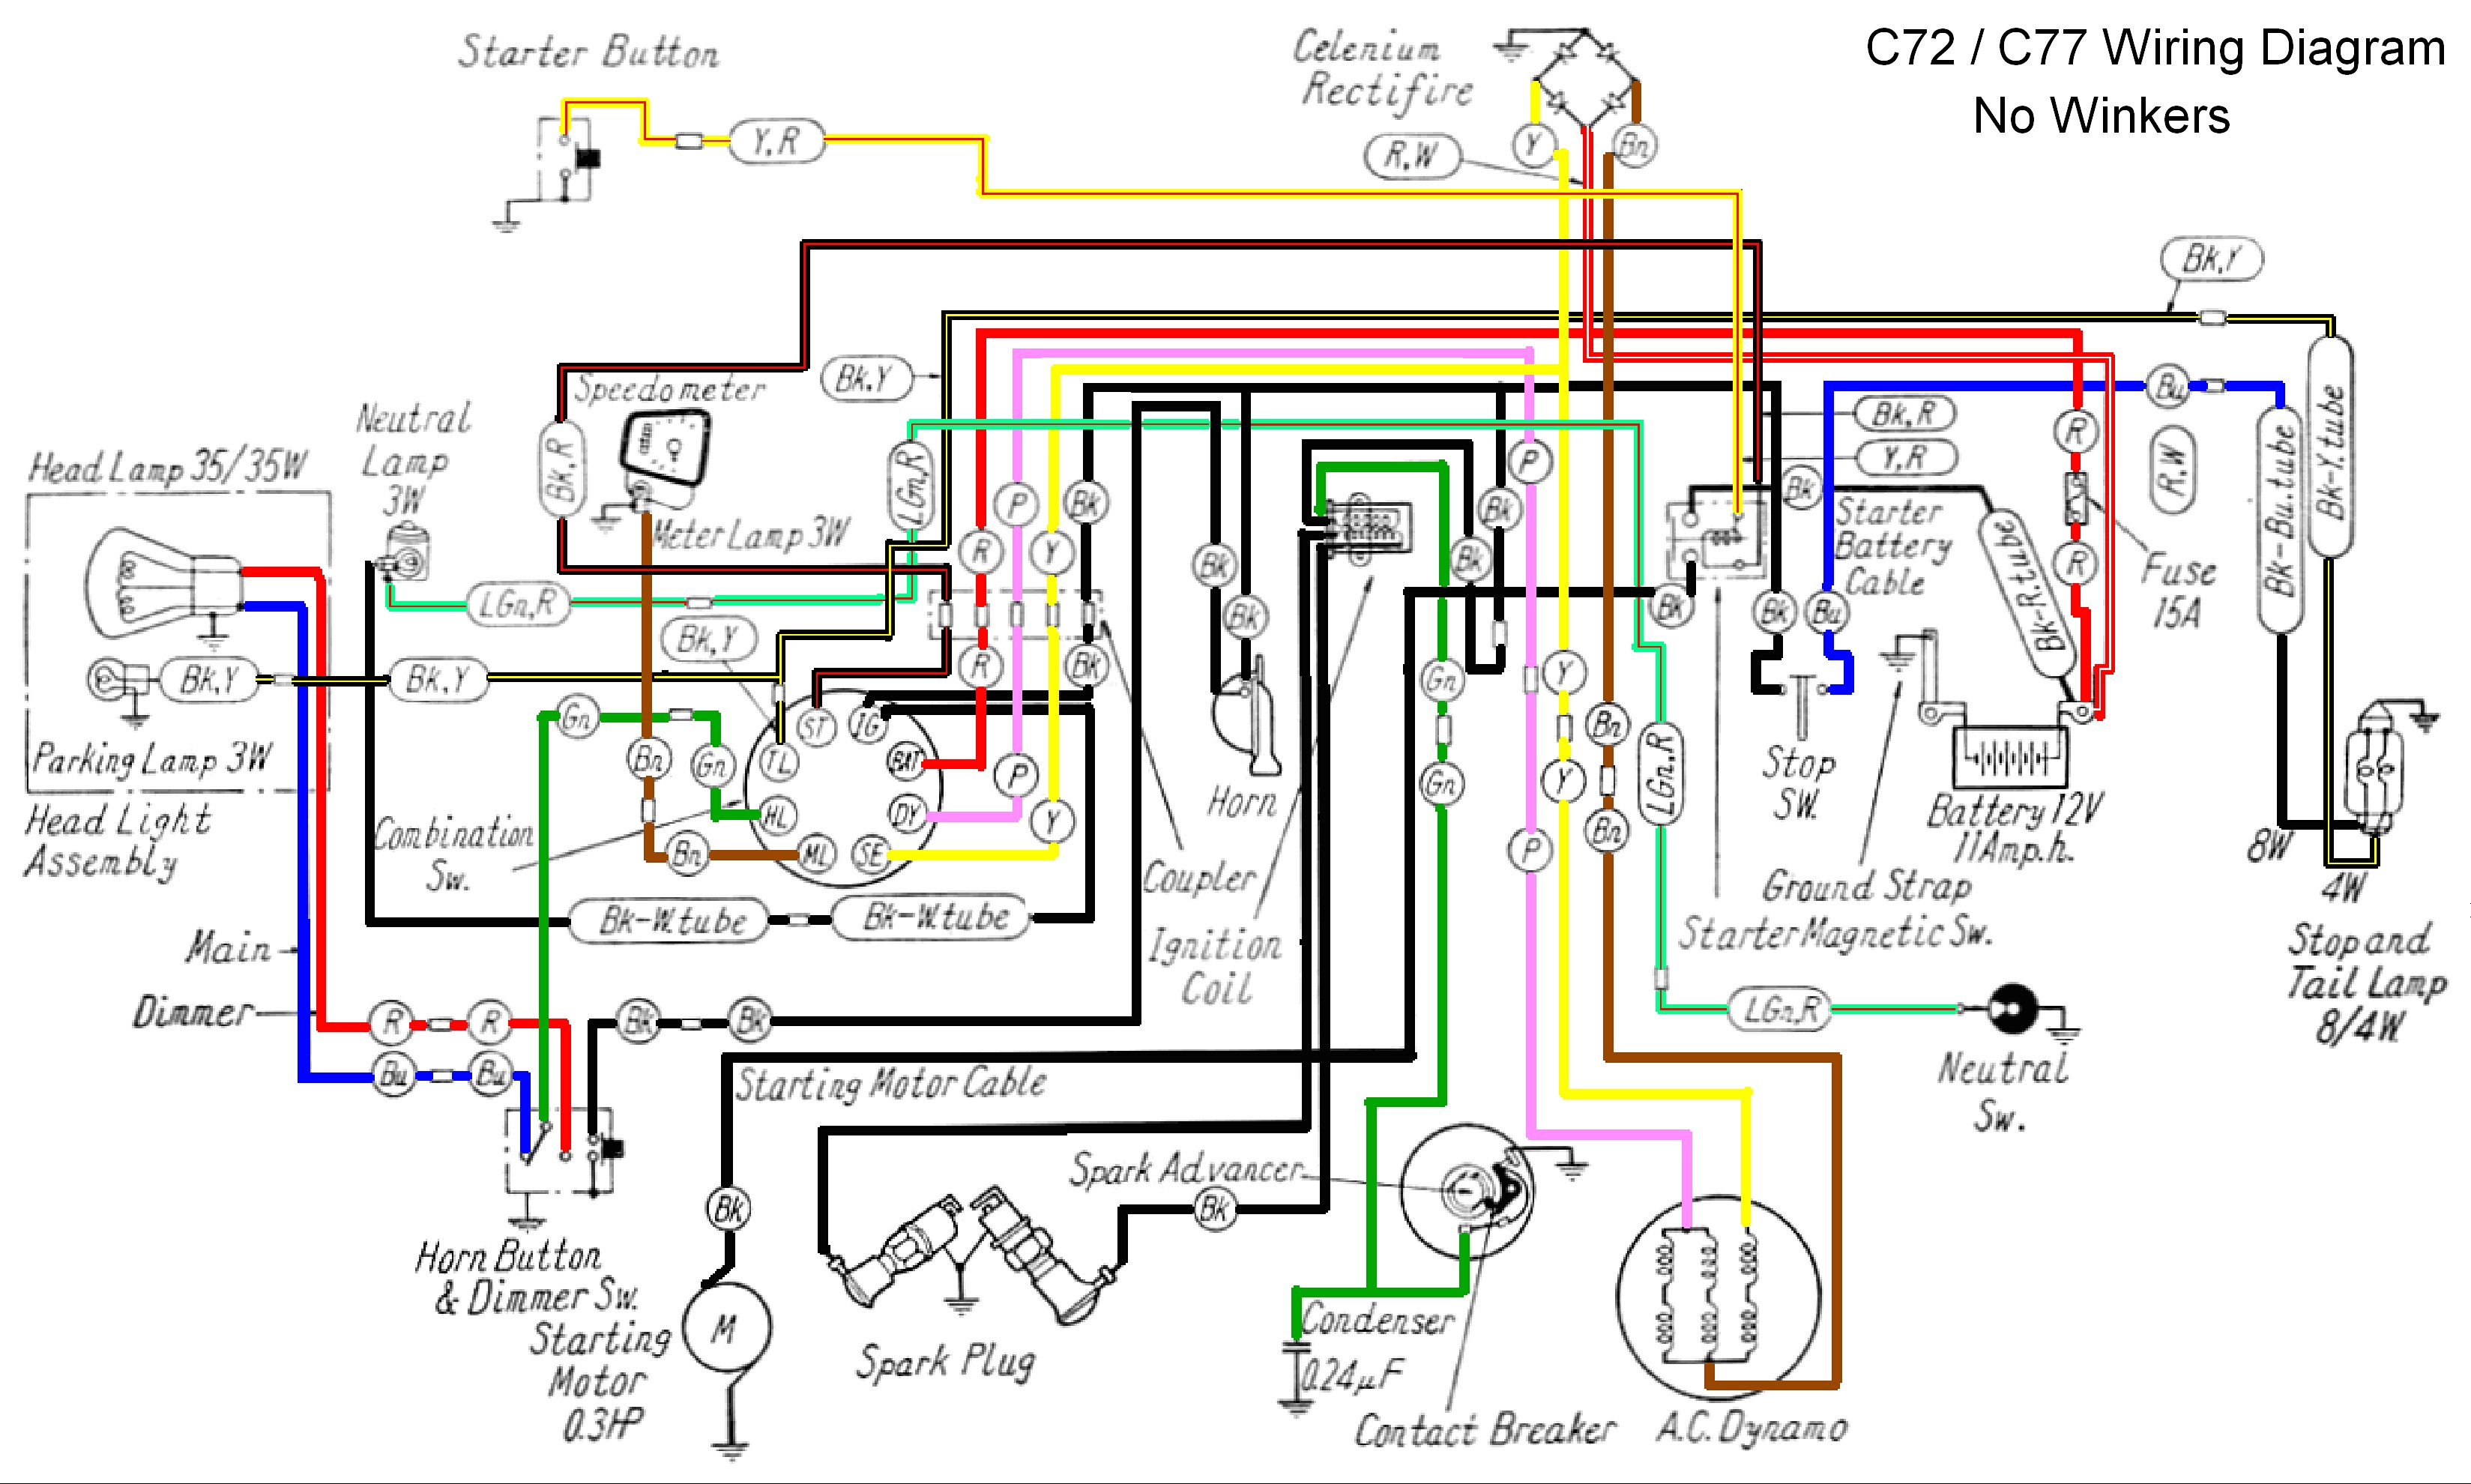 Cb500 Engine Diagram Complete Wiring Diagrams \u2022 LED Light Bar Wiring  Diagram Cbx Wiring Diagram